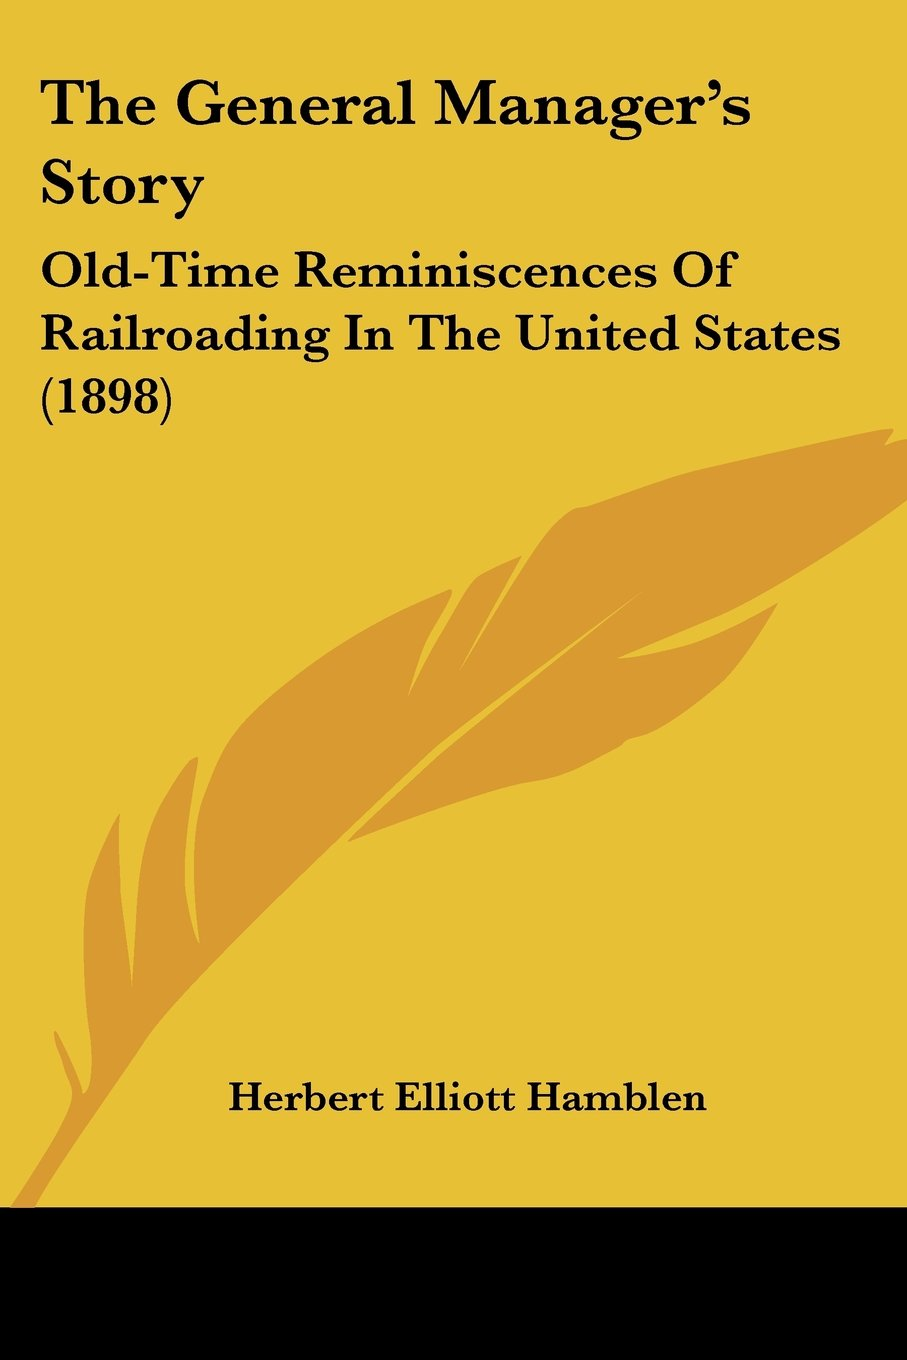 The General Manager's Story: Old-Time Reminiscences Of Railroading In The United States (1898)